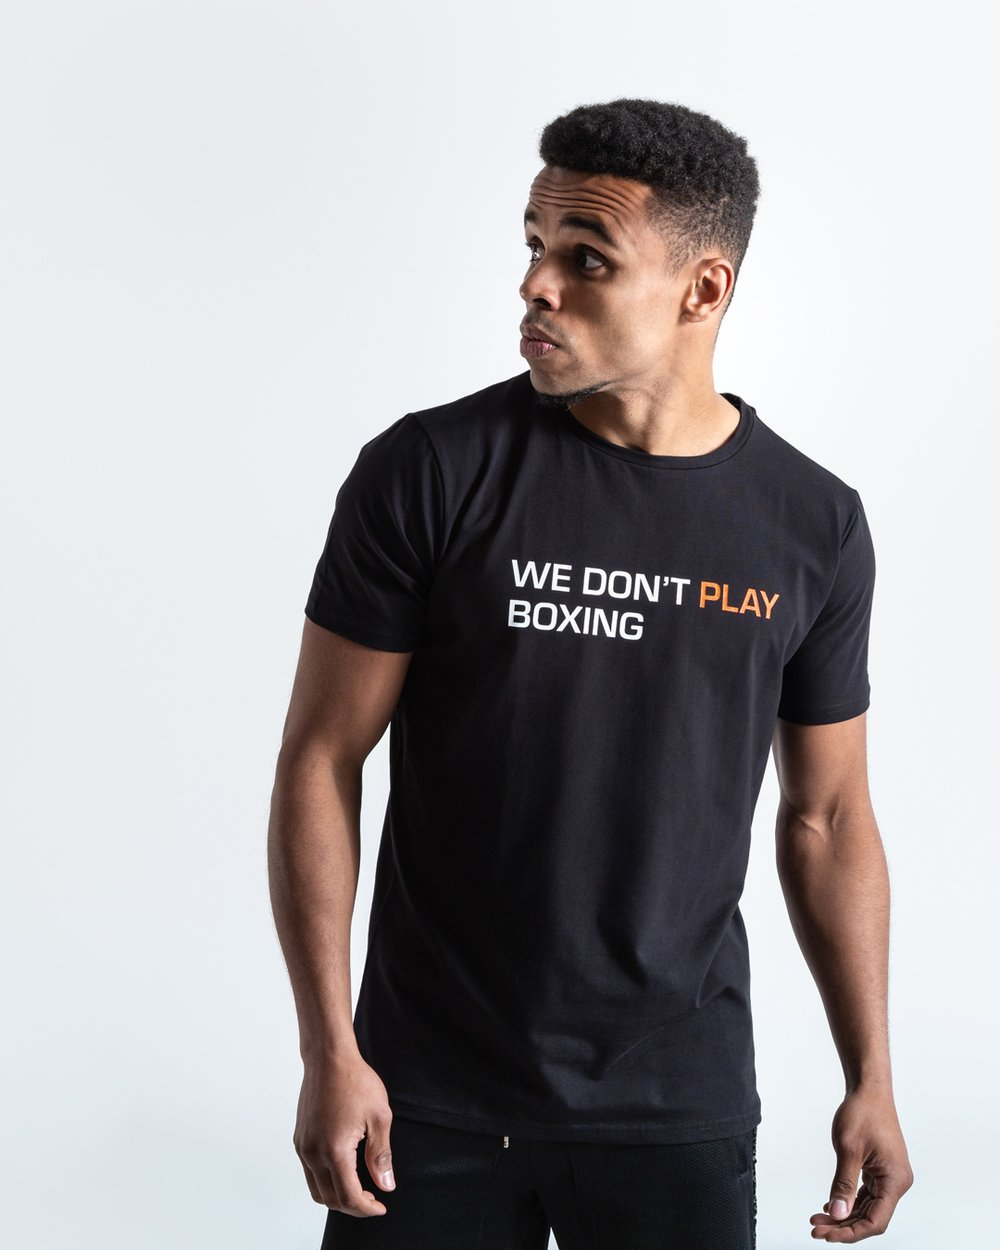 WE DON'T PLAY BOXING T-SHIRT - BLACK - Pandemic Fight Gear Inc.